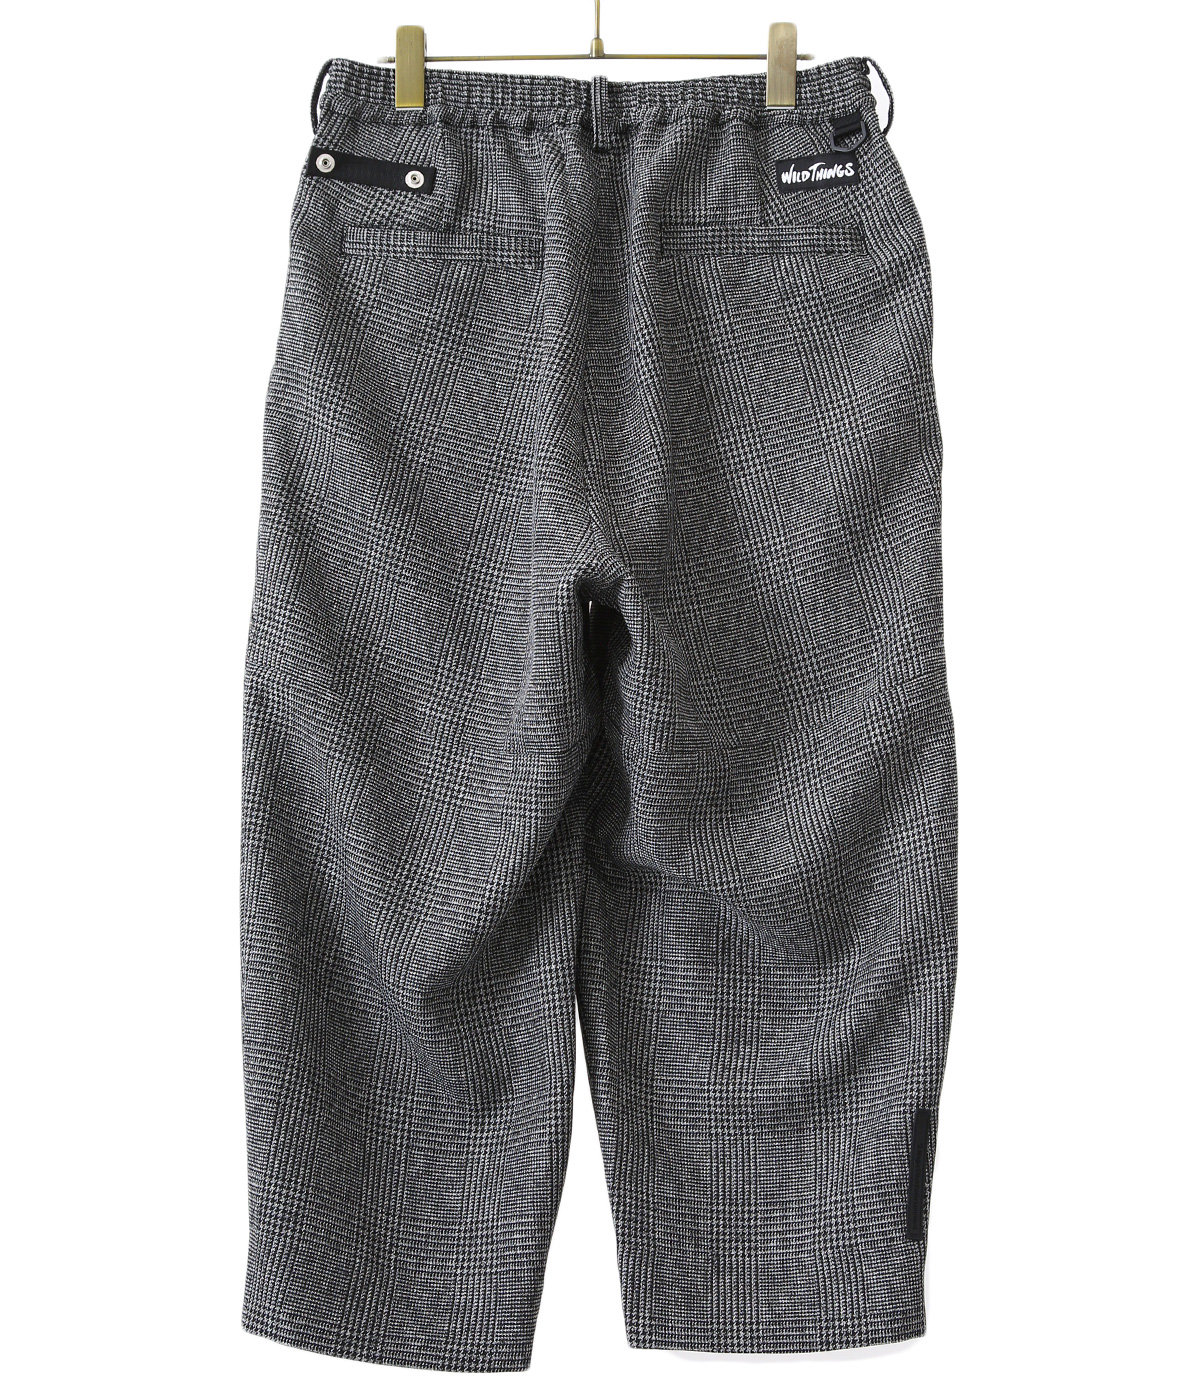 WATER RESISTANT CROPPED PANTS by Wild Things